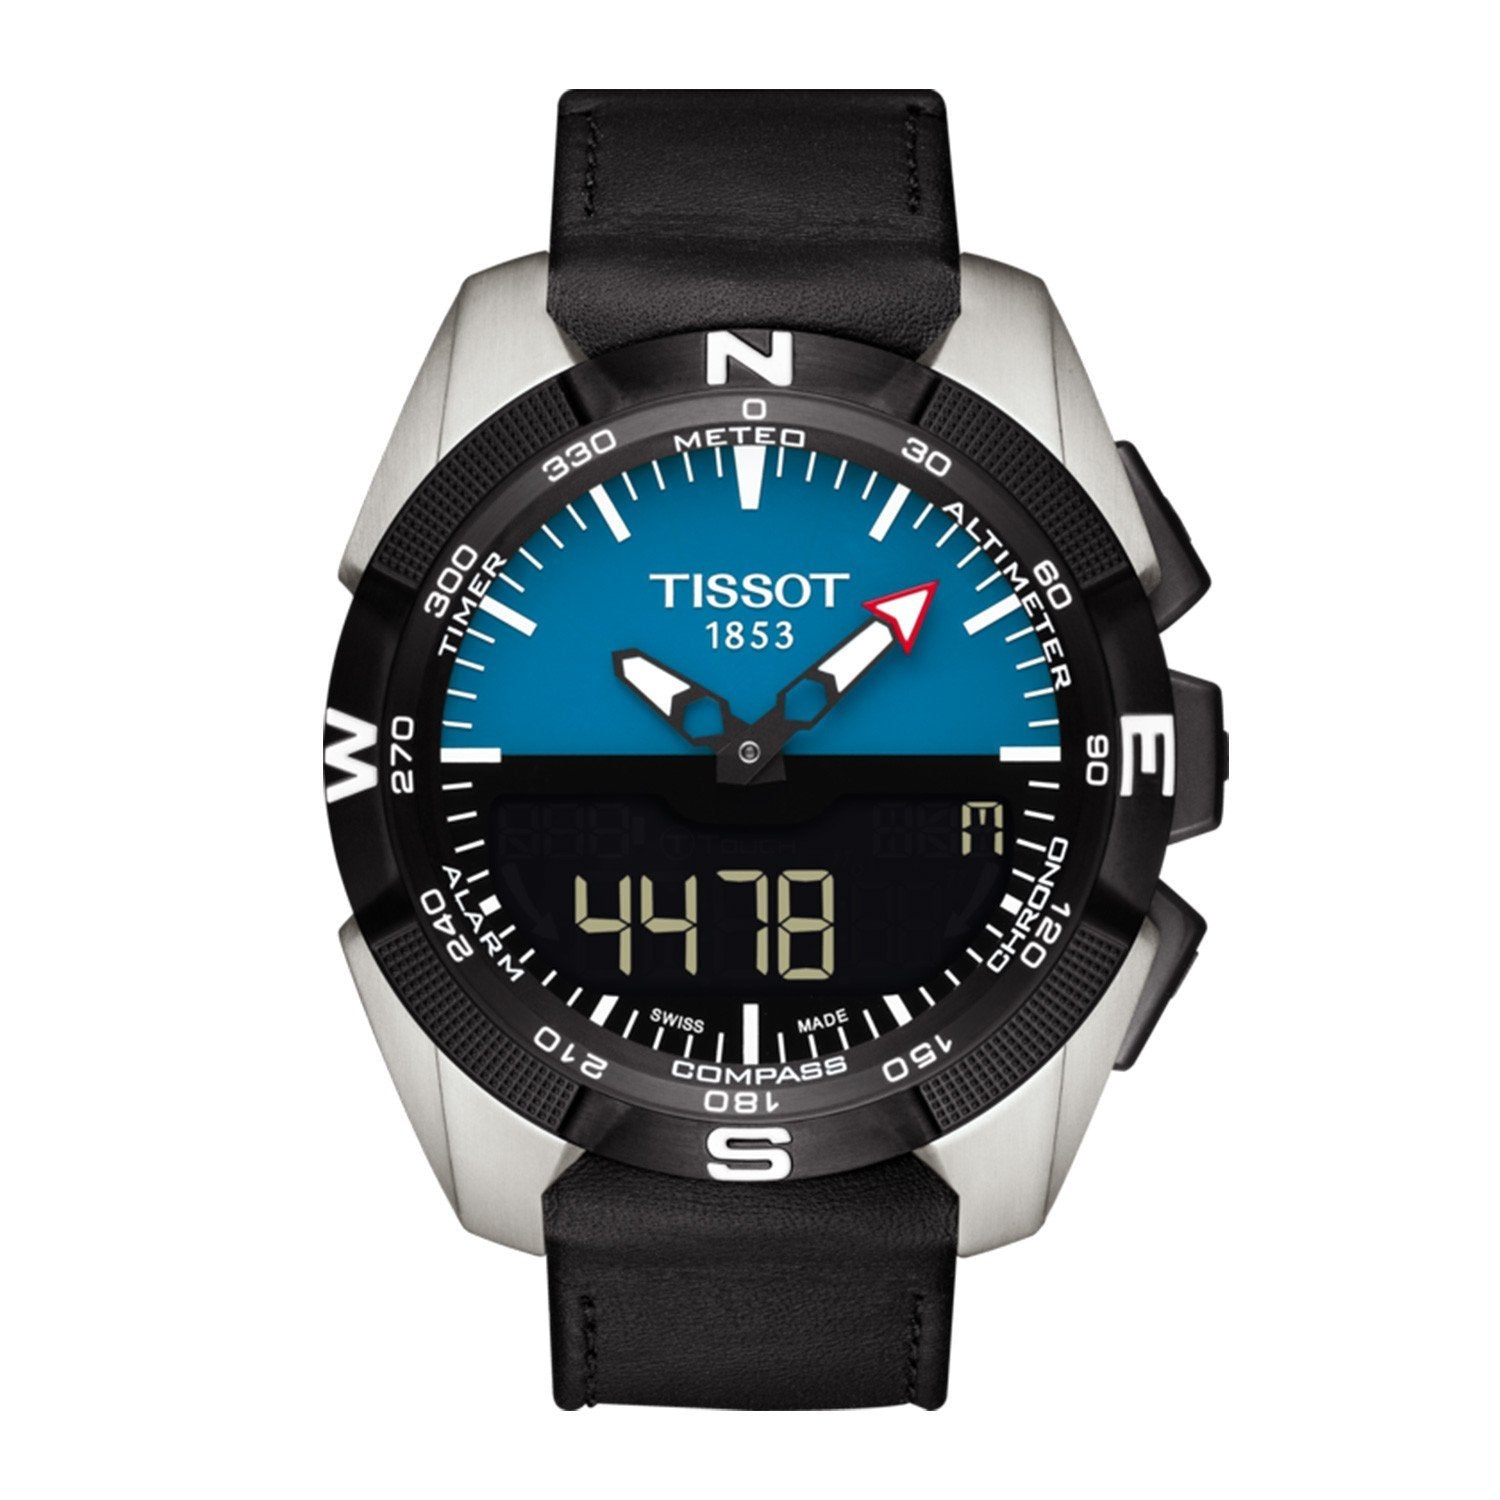 Tissot T-Touch Expert Solar Chronograph Blue - Watches & Crystals